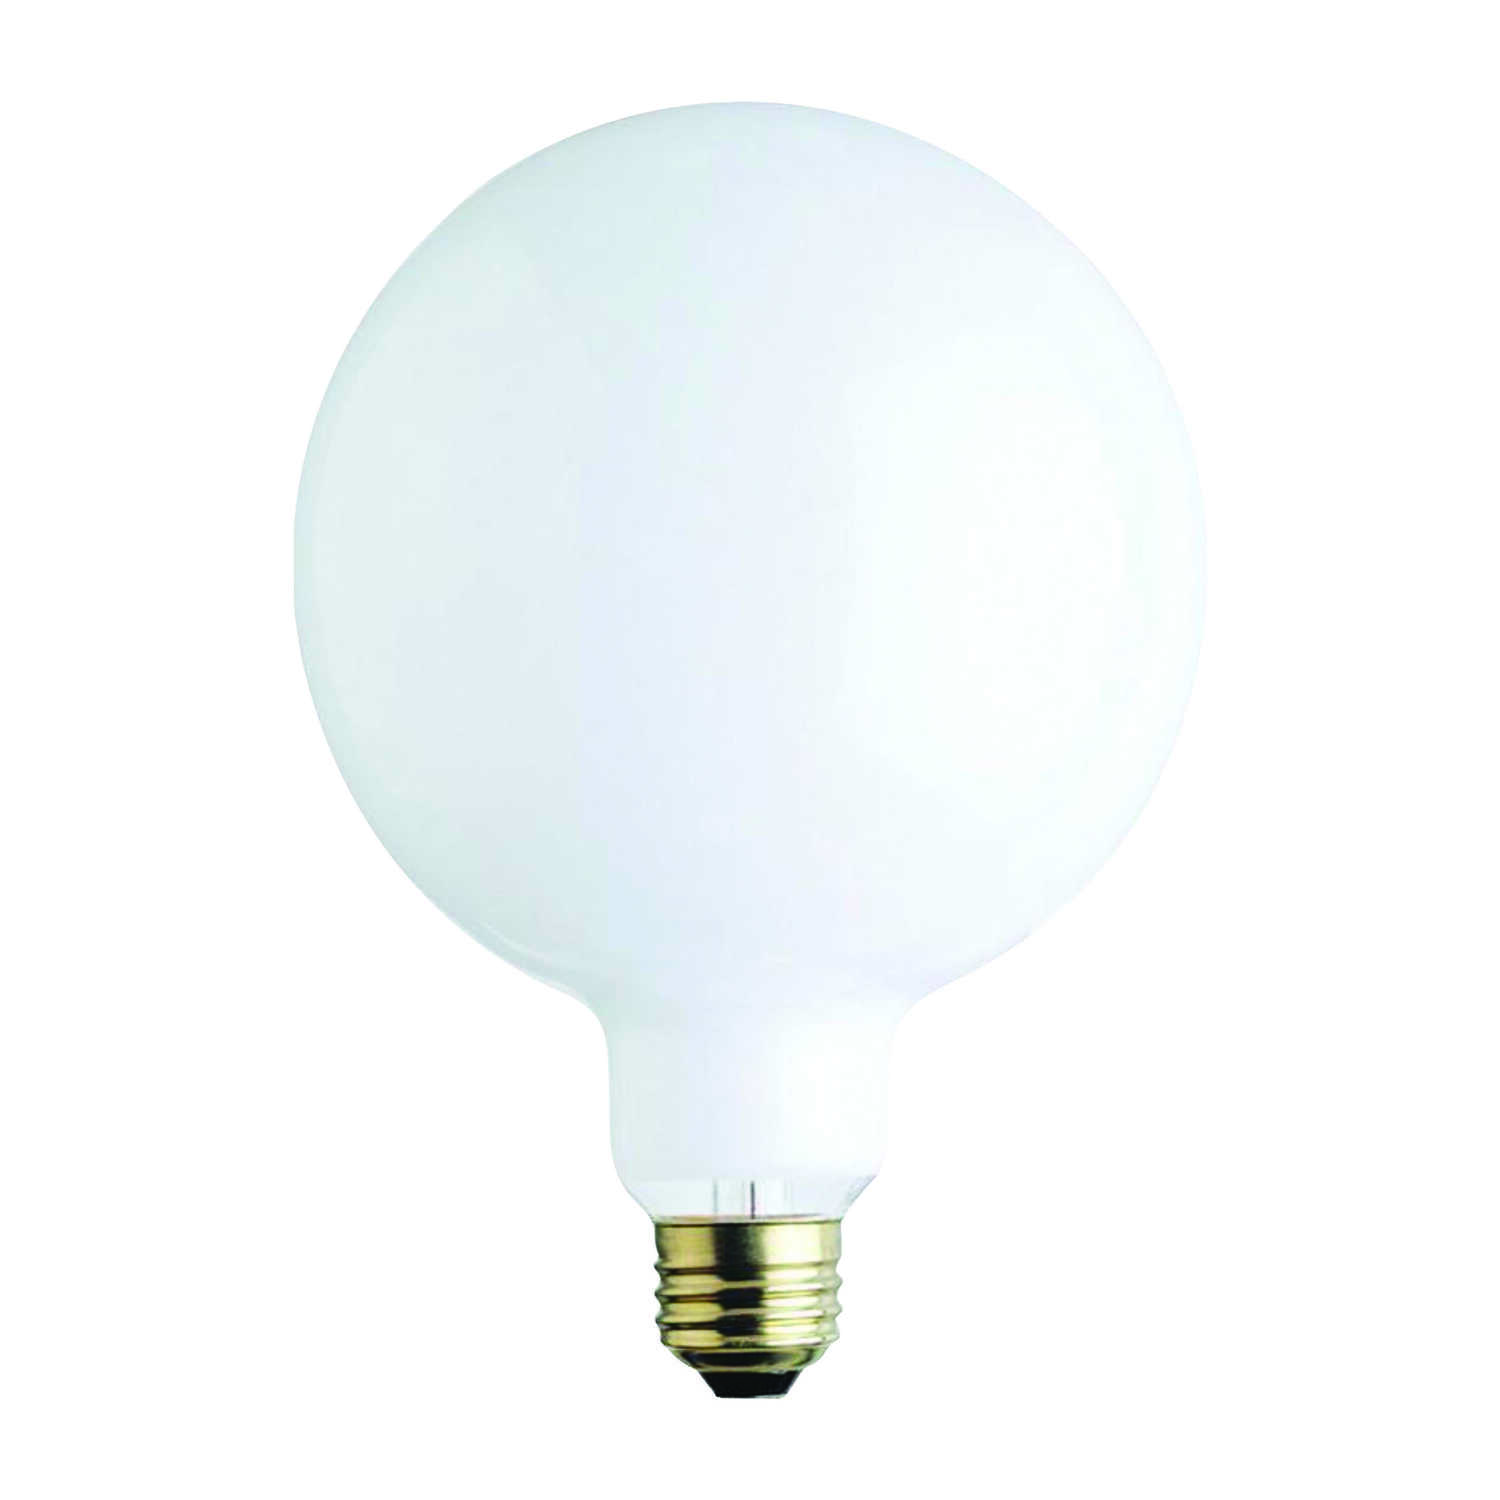 Ace  60 watts G40  Incandescent Bulb  650 lumens Soft White  Globe  1 pk